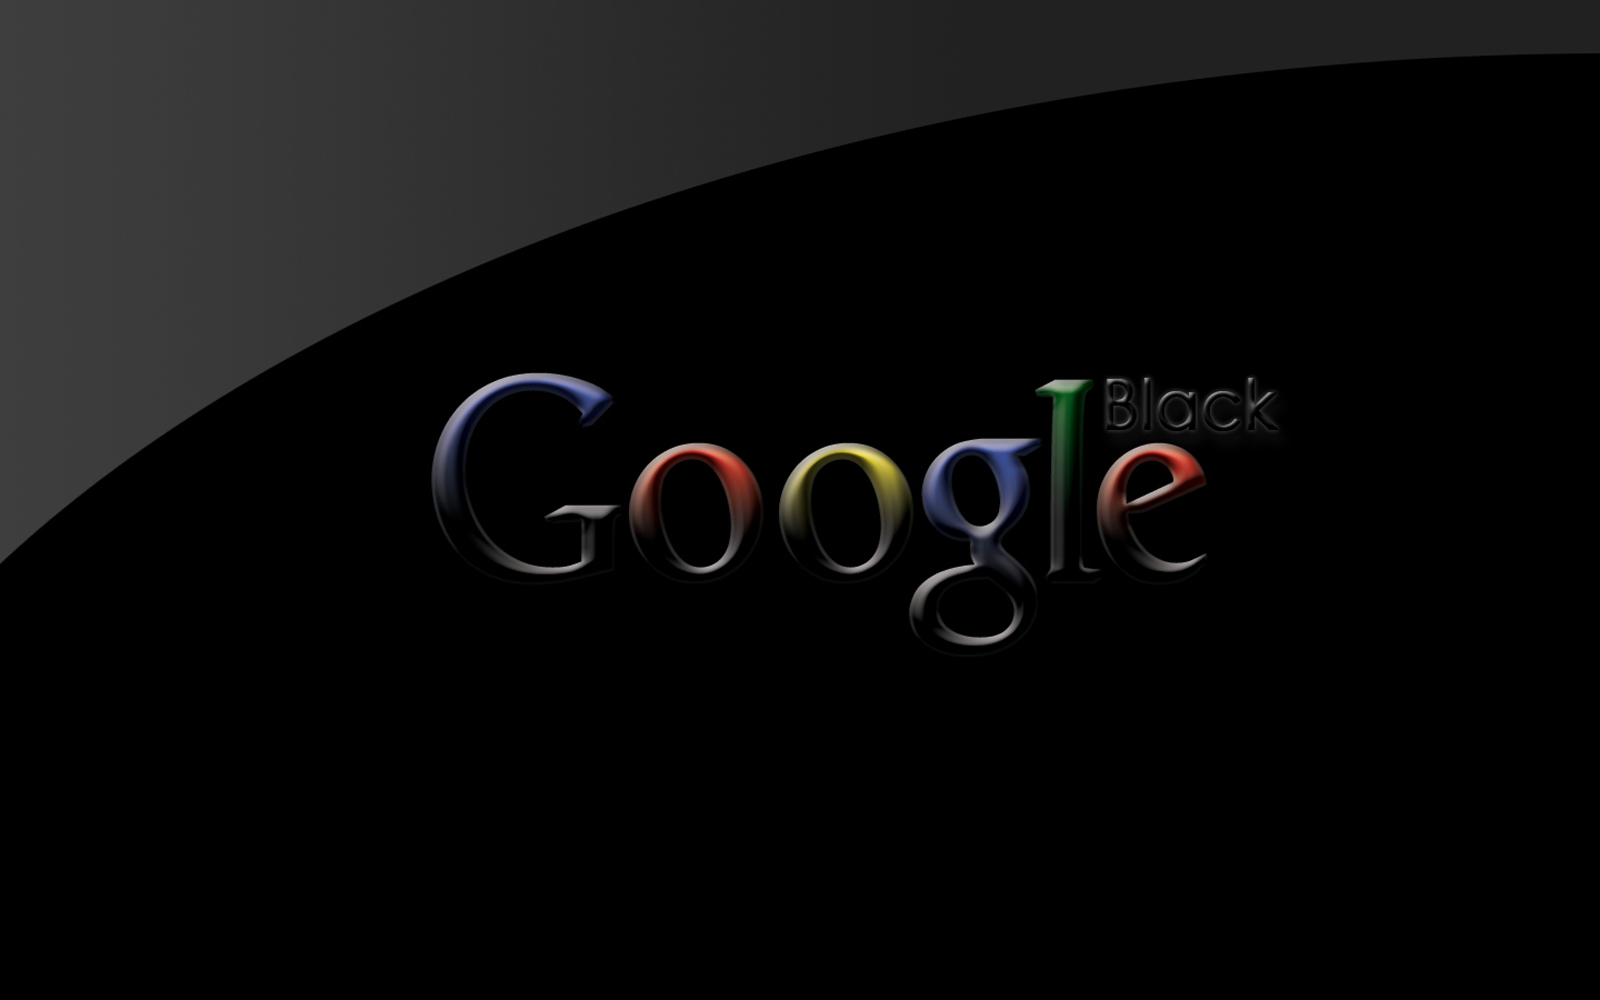 how to change google background to black